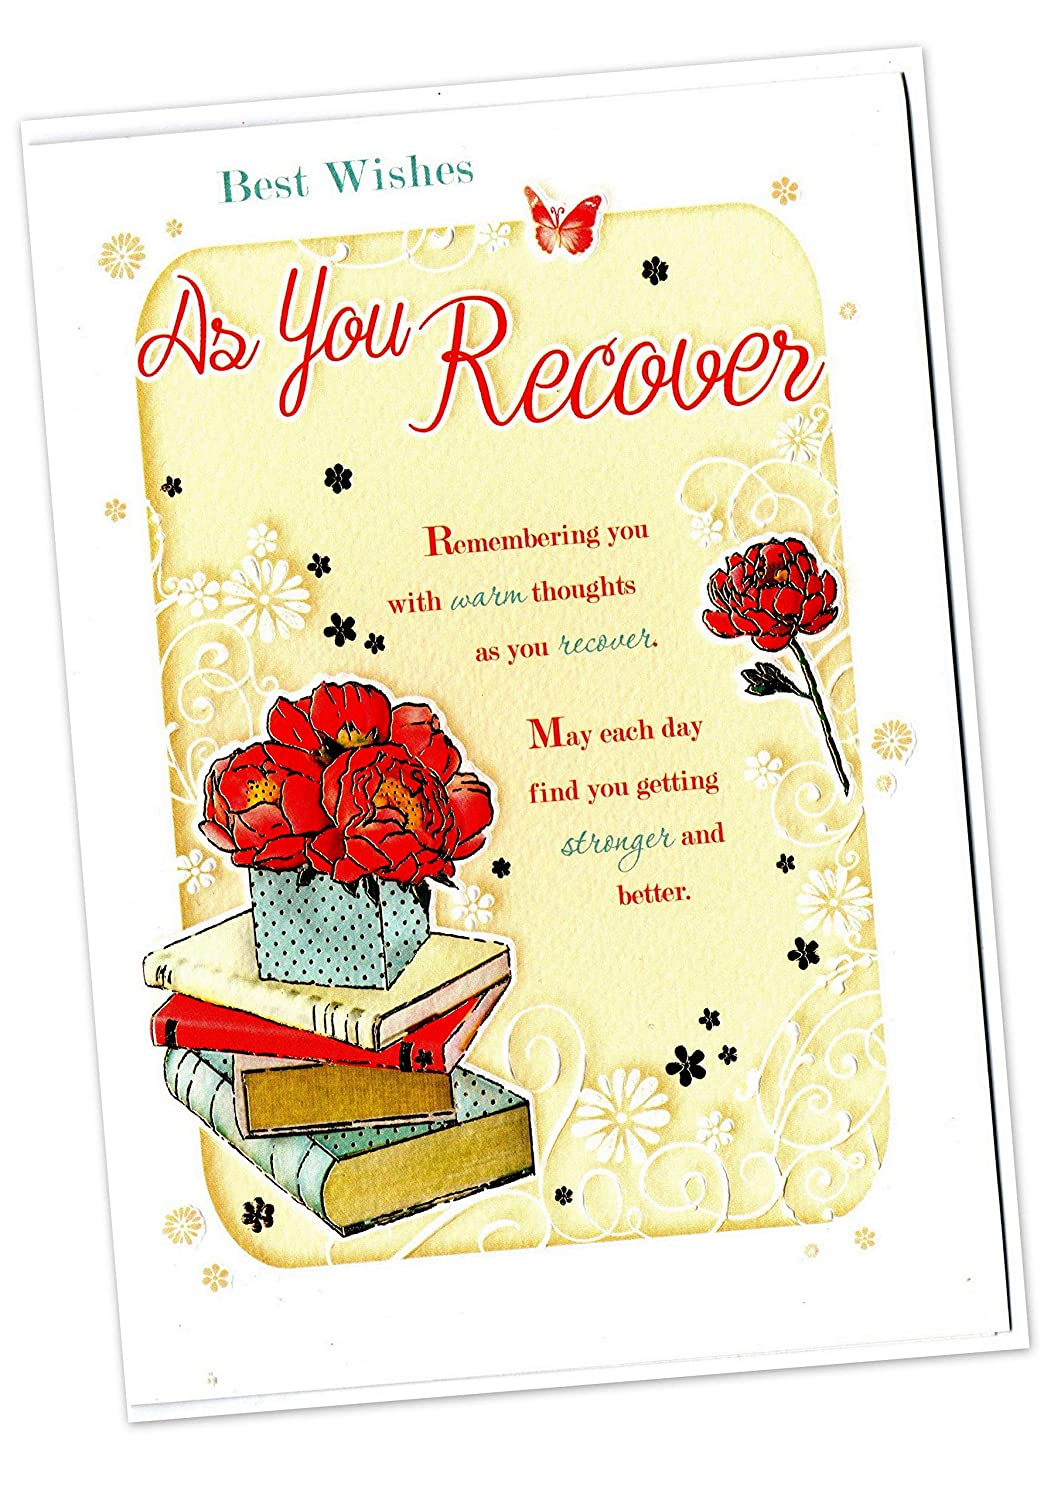 6 Get Well Soon Textured Greeting Cards. with envelopes. Heartfelt Cards Sensations